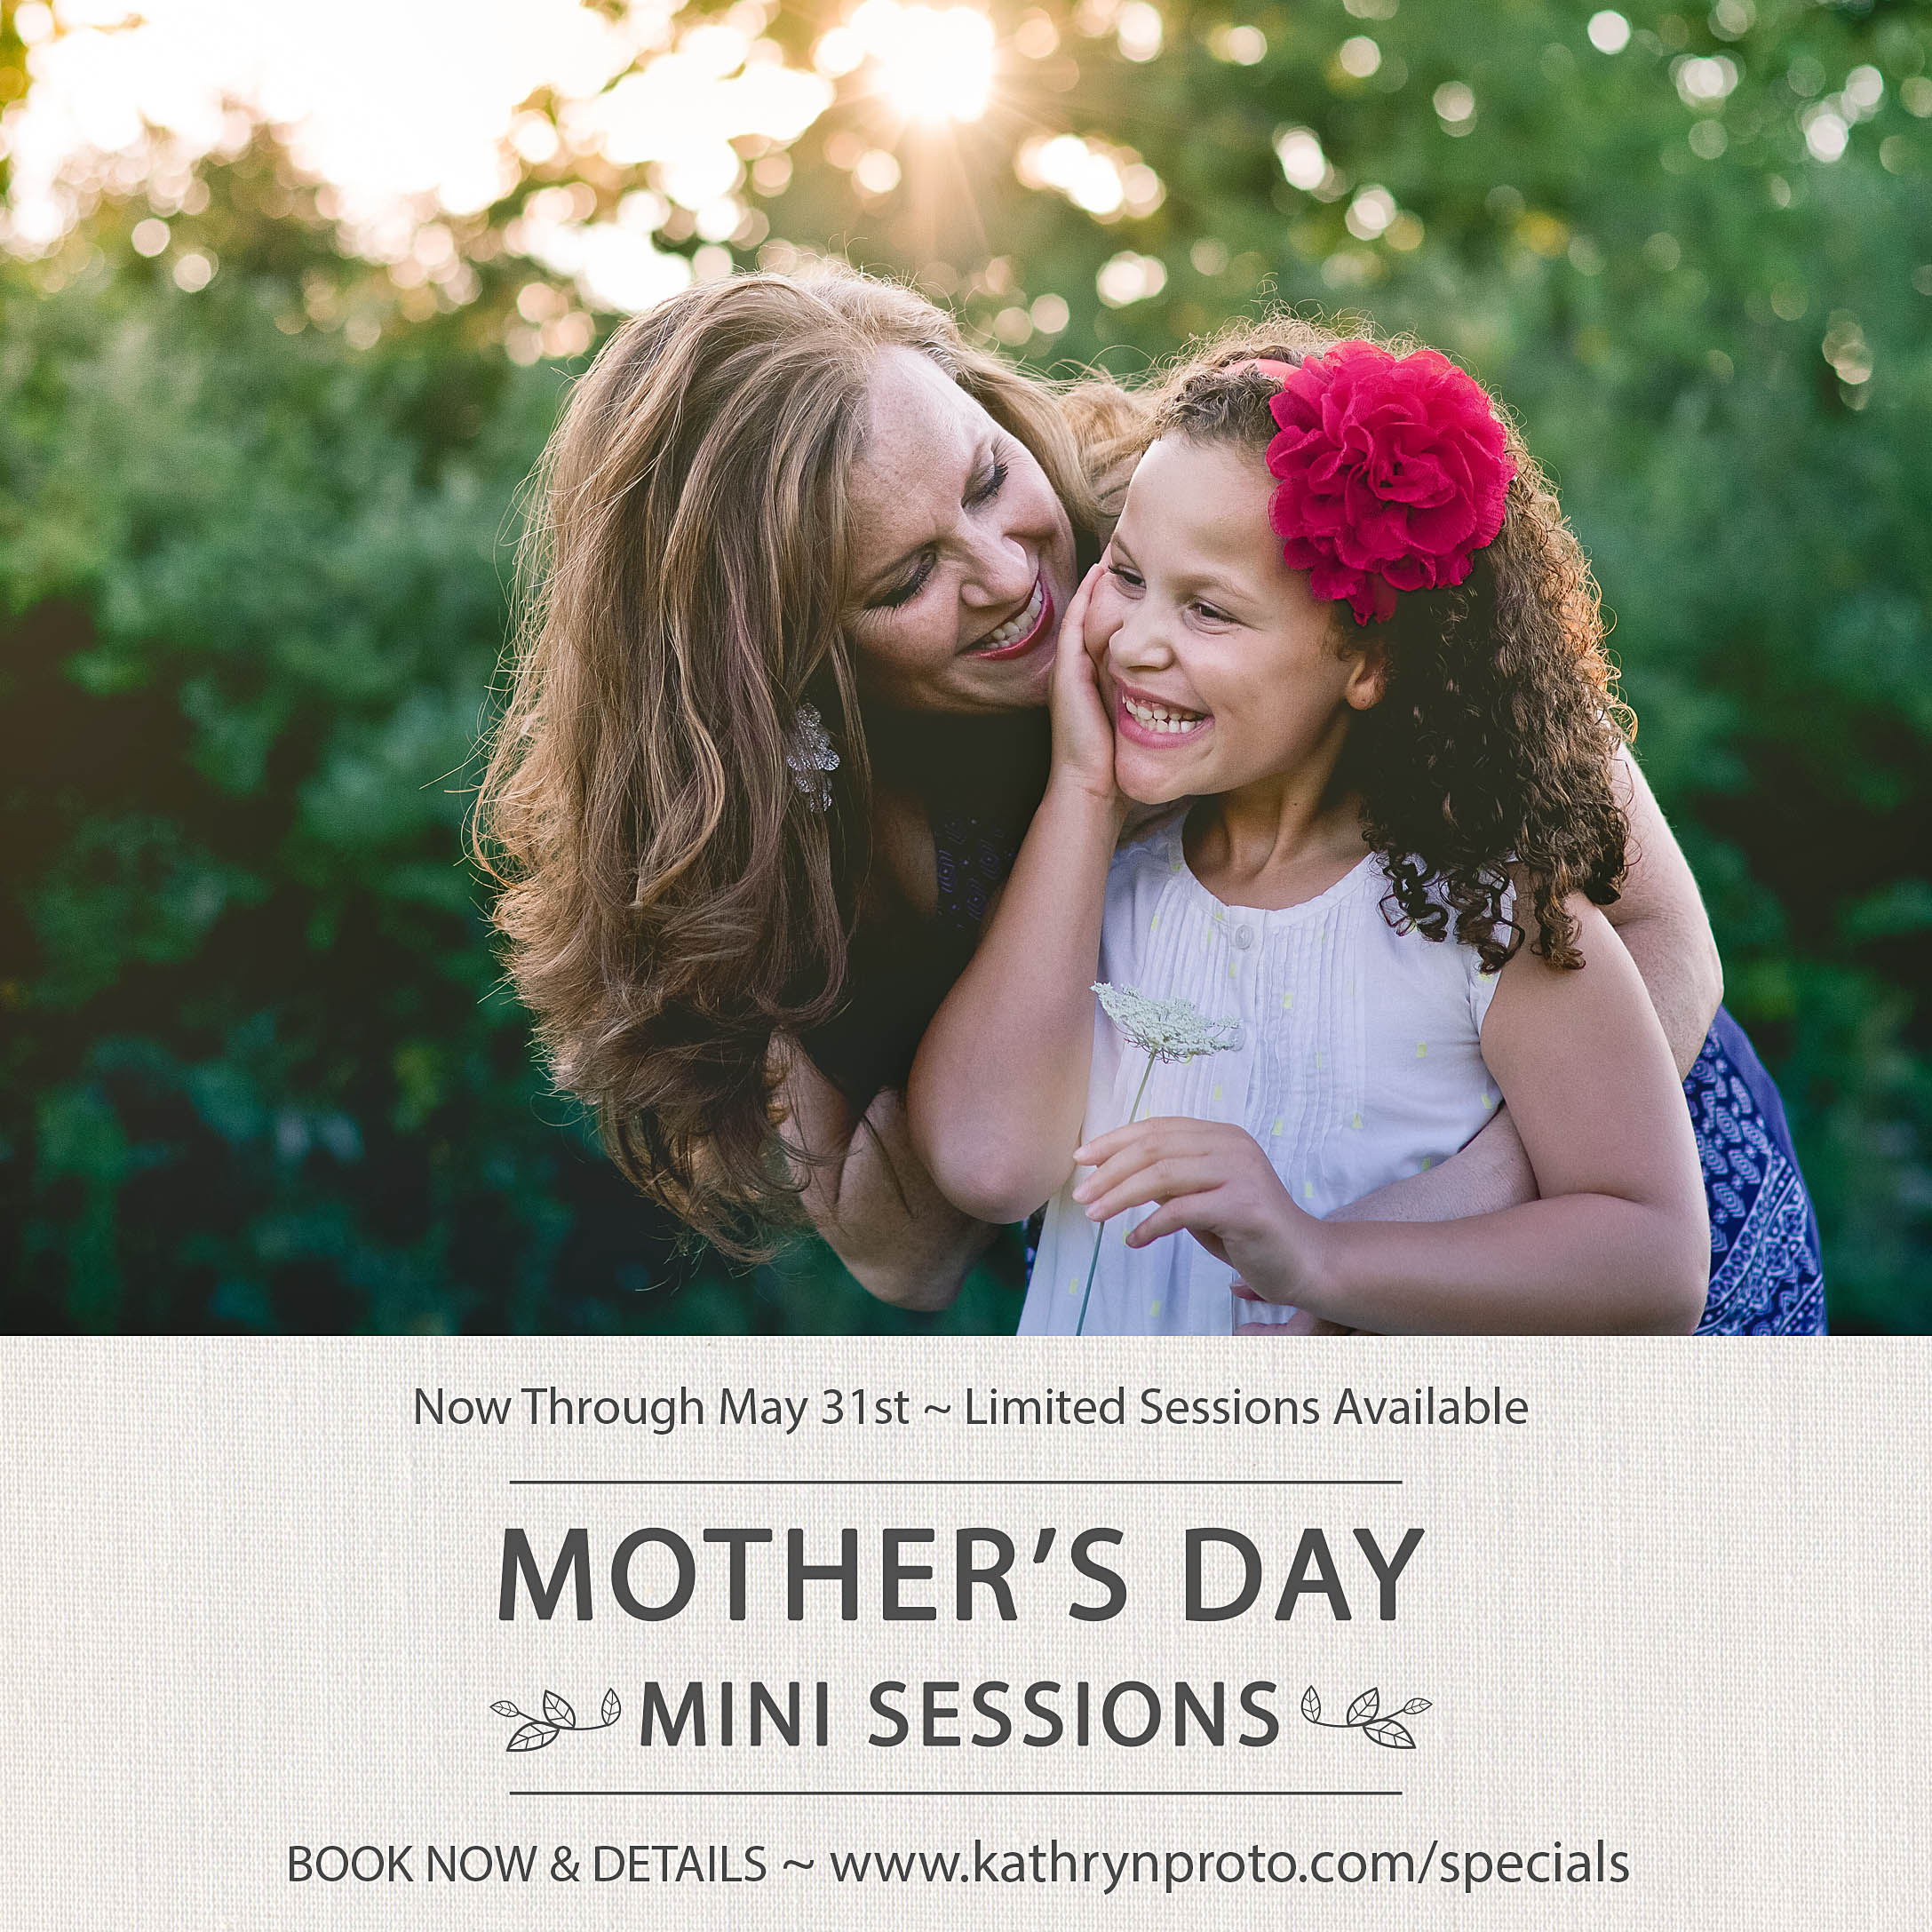 mothersdayminisessions